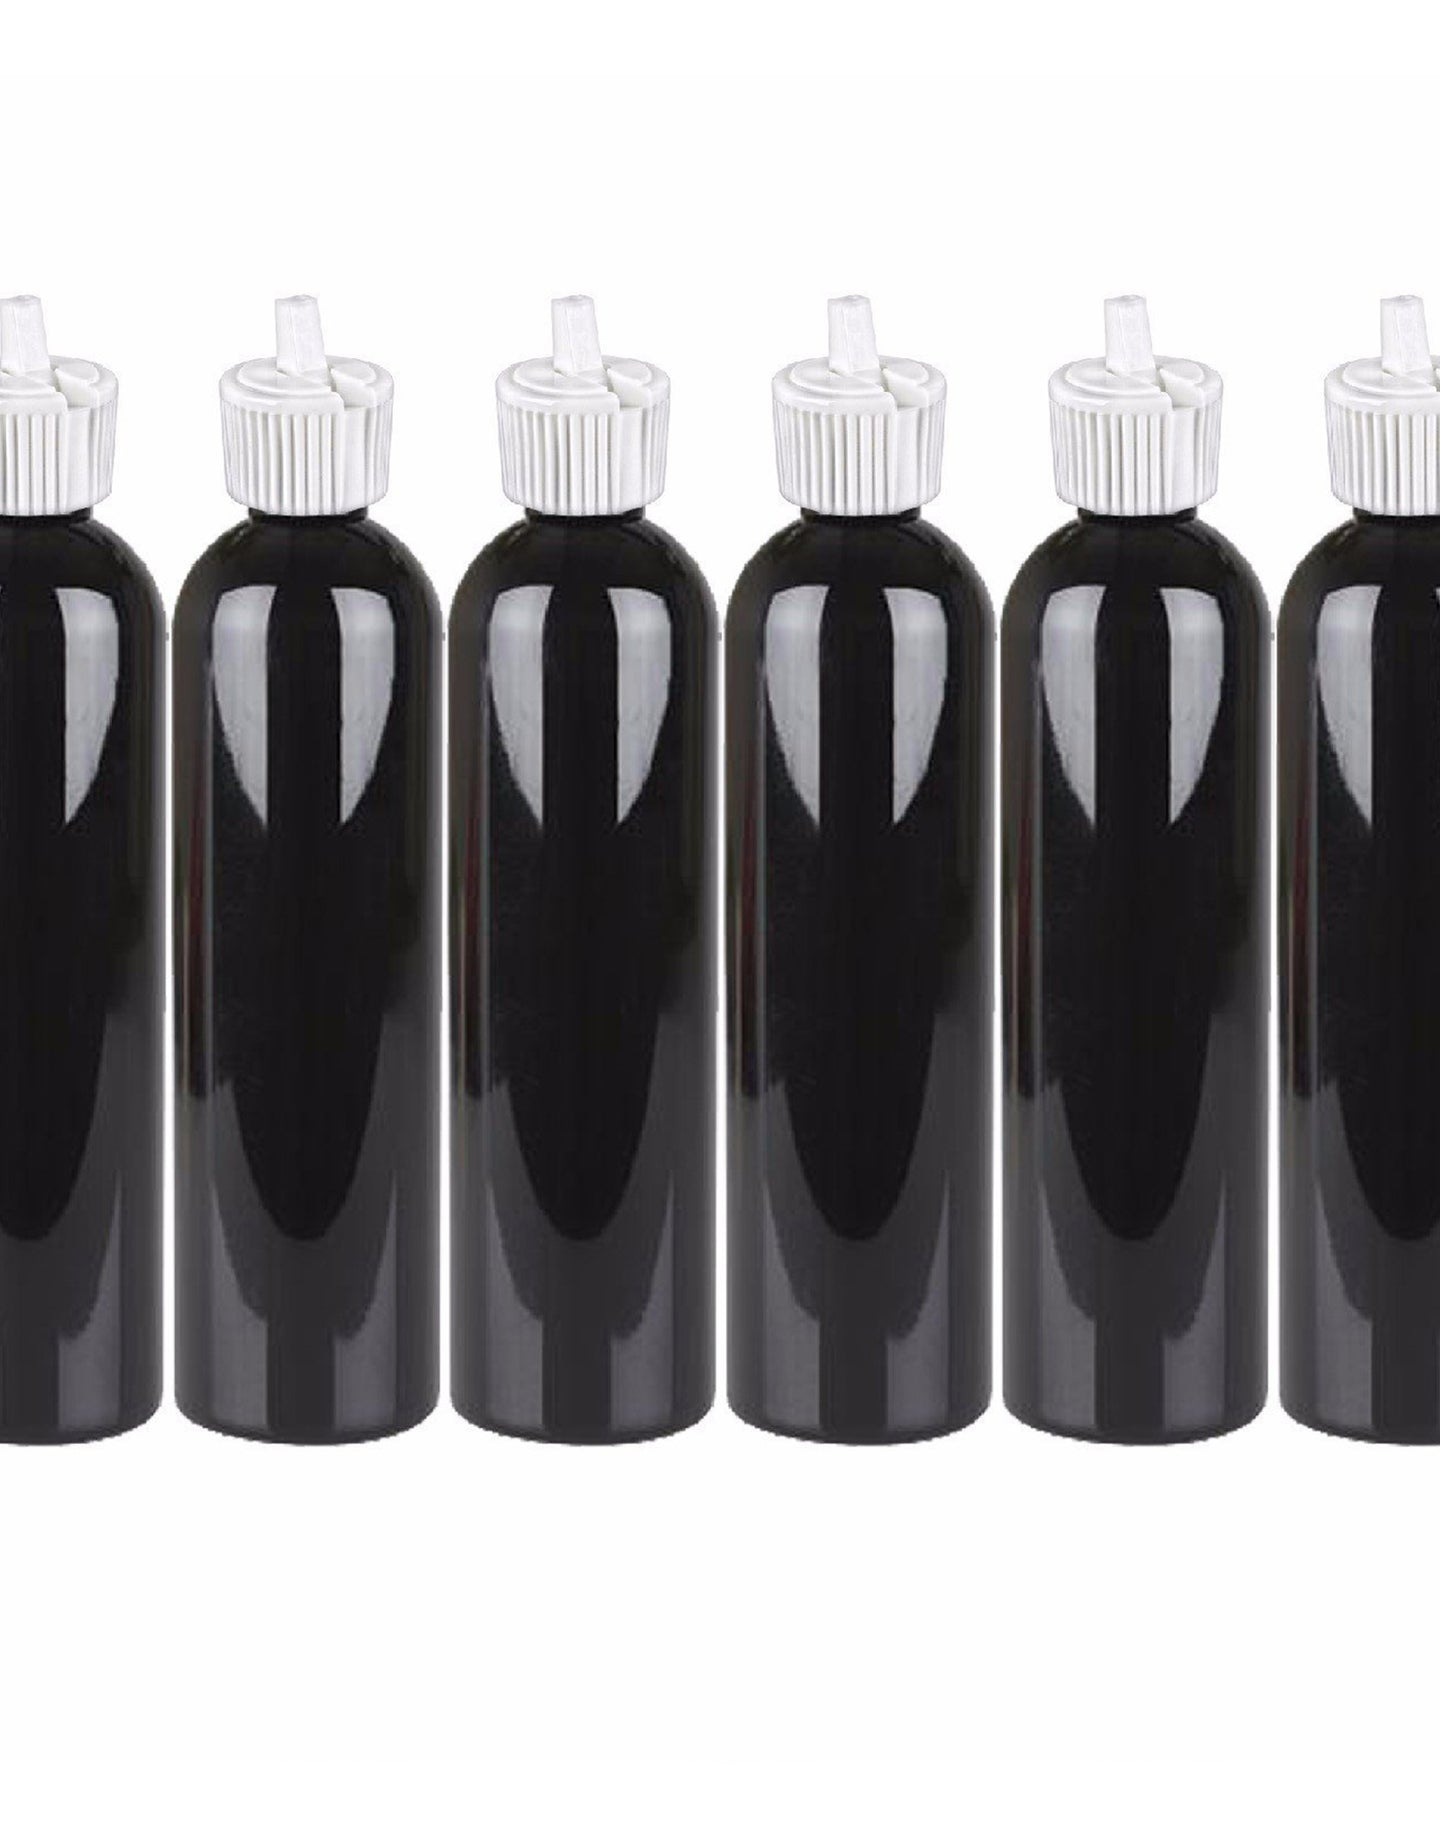 MoYo Natural Labs Turret Spout 8 oz Empty Liquid Bottle with Adjustable Dispenser (Pack of 6, Black)